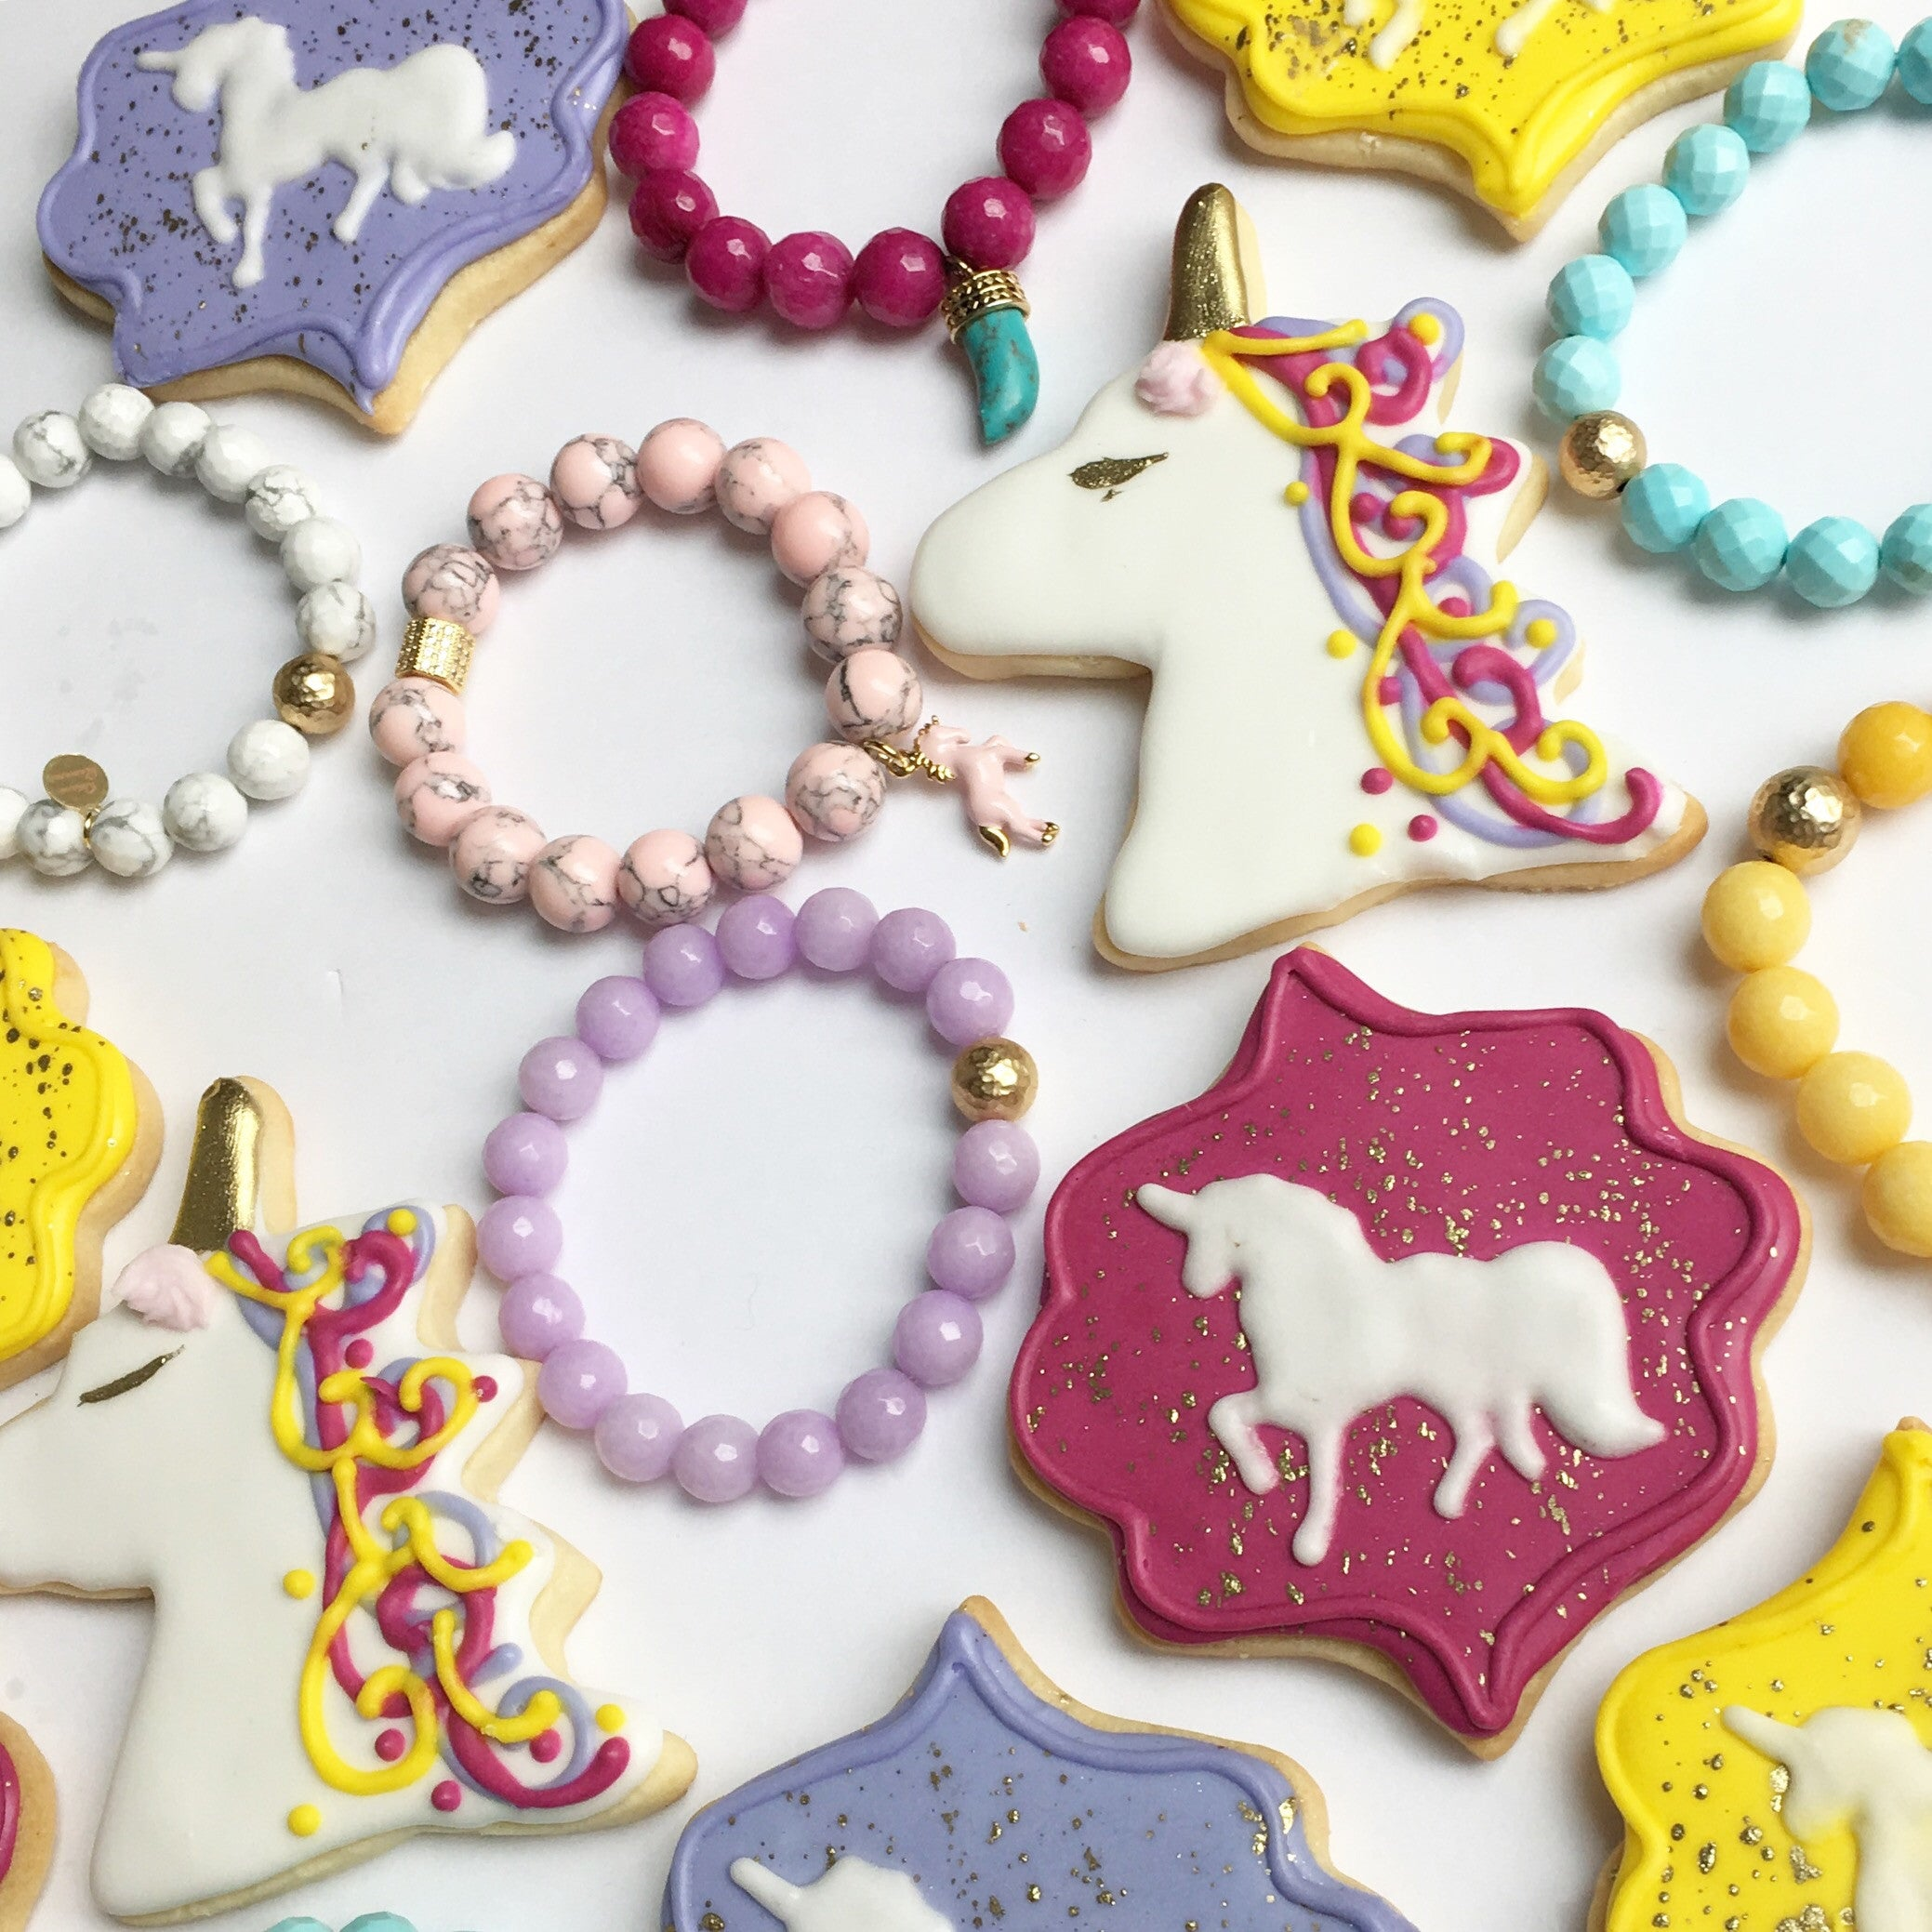 Magical Unicorn Armparty - Oriana Lamarca LLC